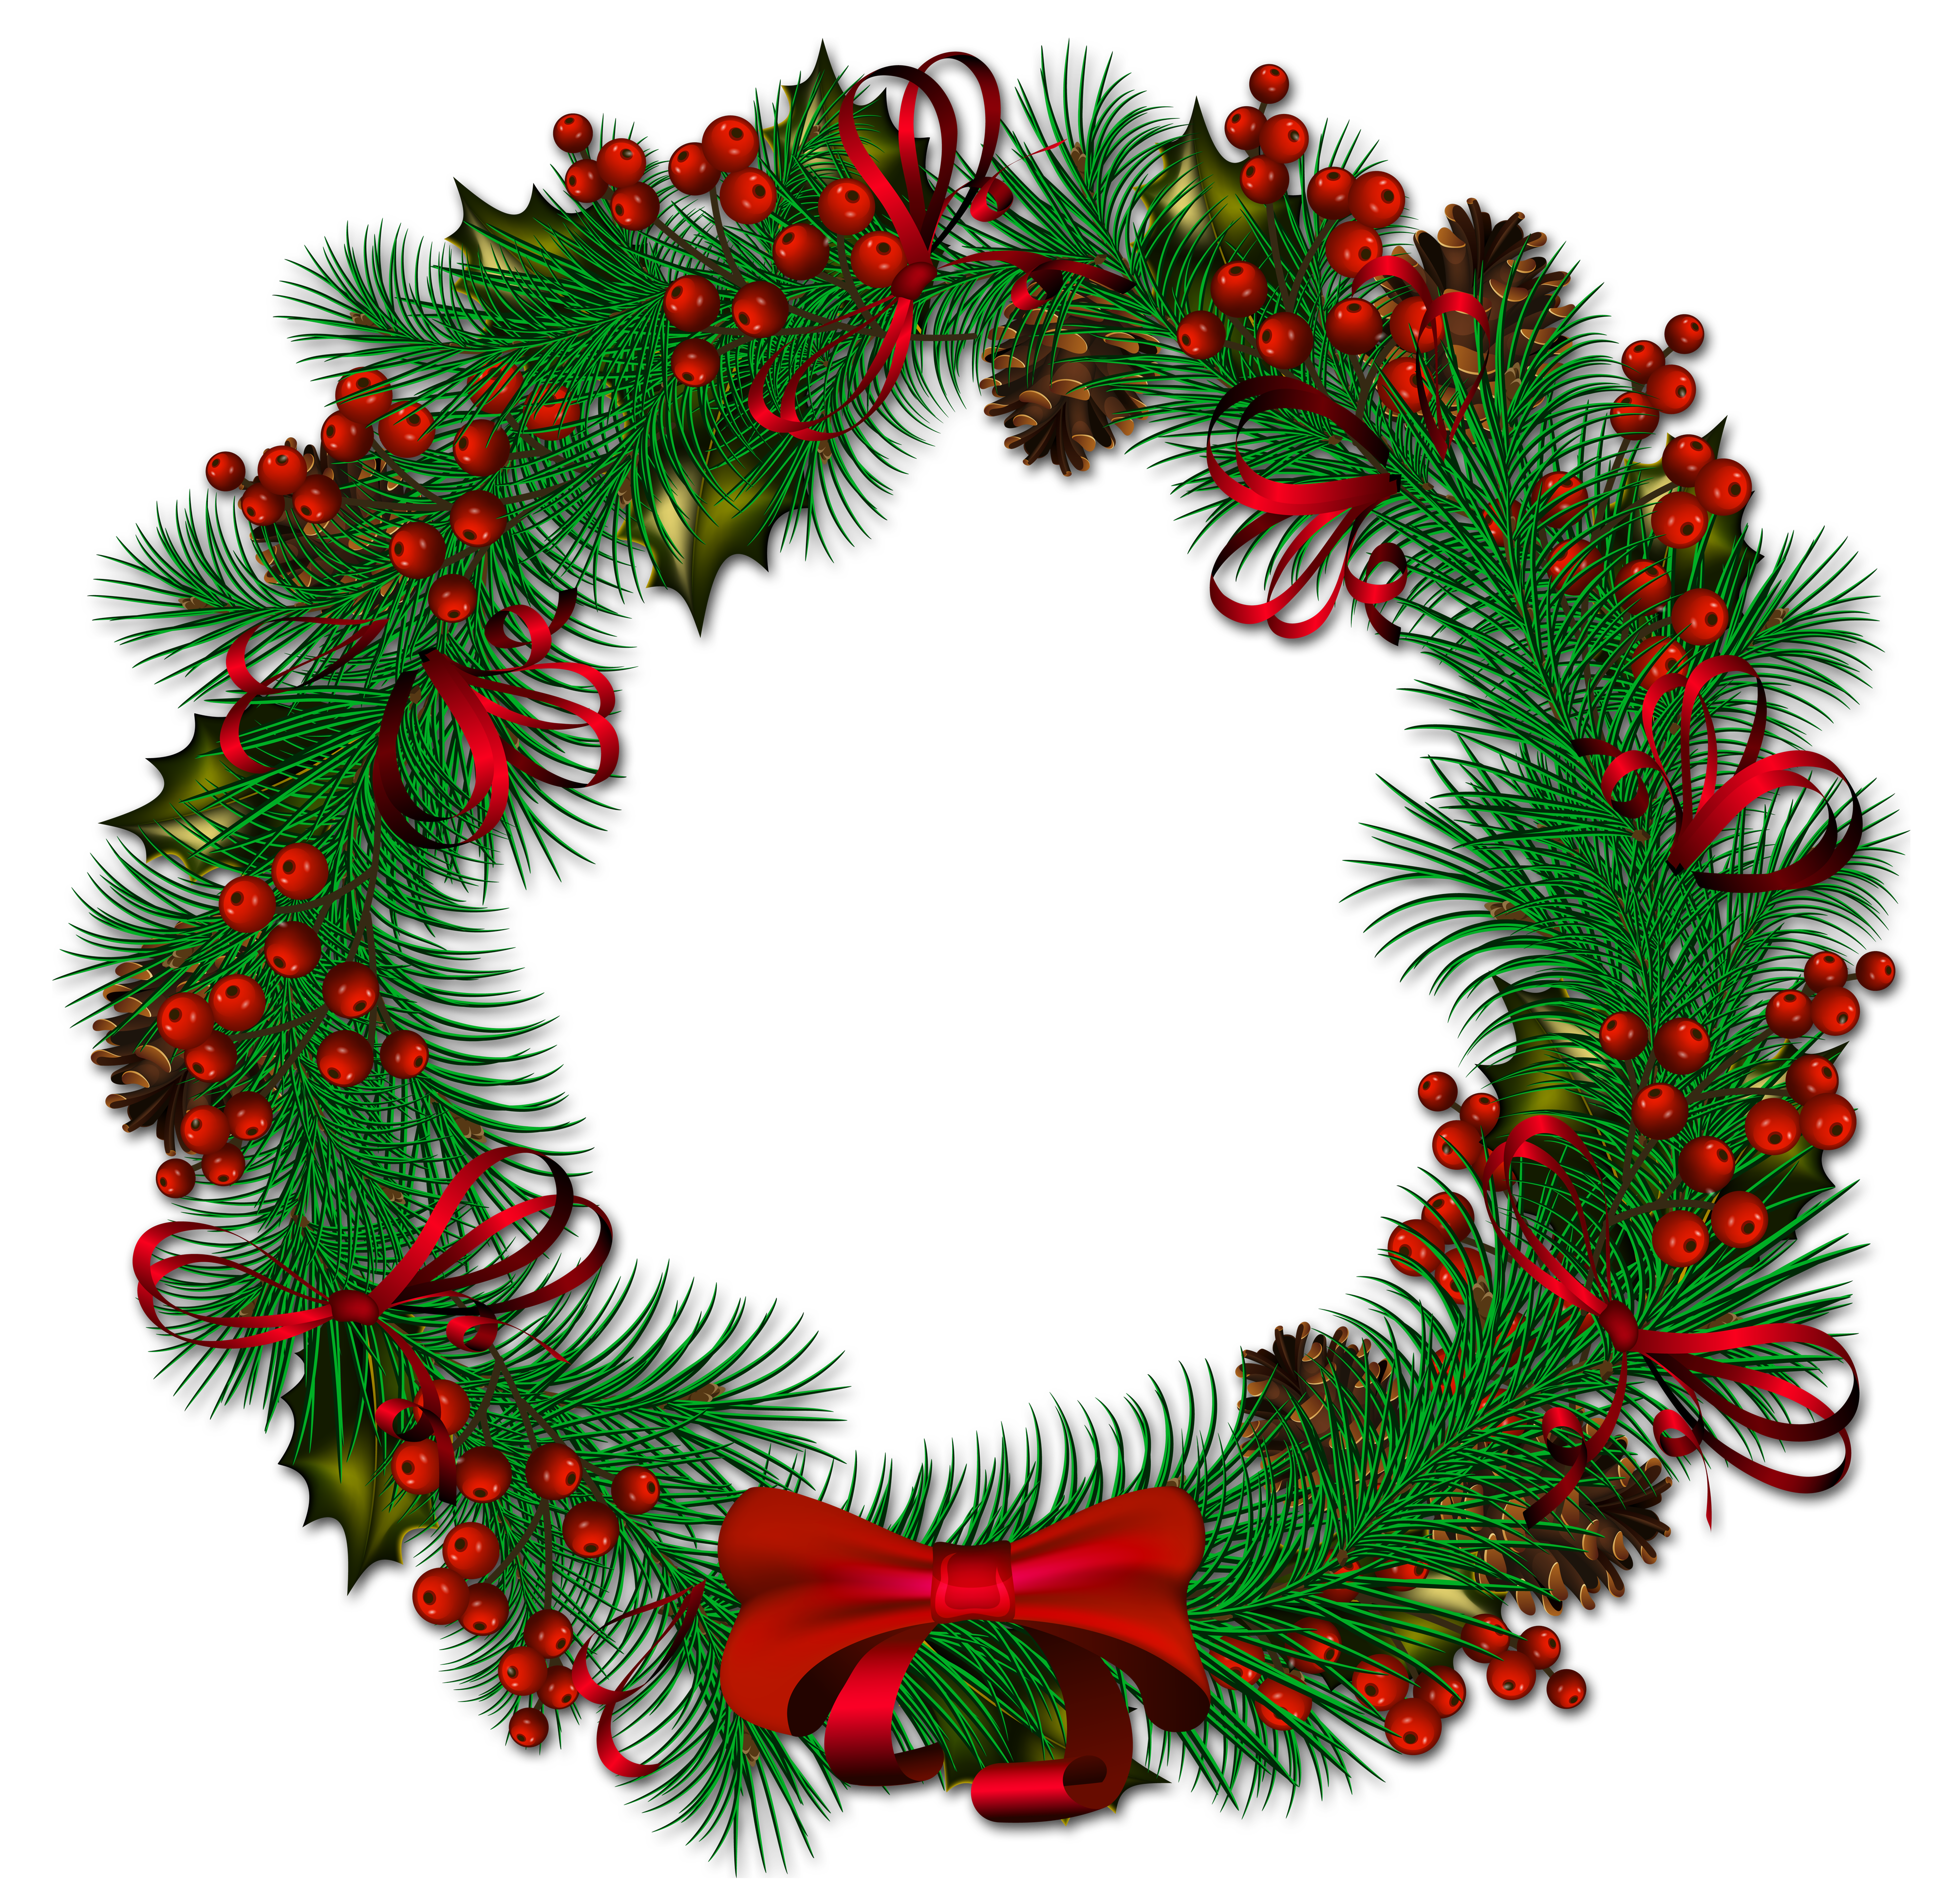 Transparent Christmas Pinecone Wreath with Red Ribbon.